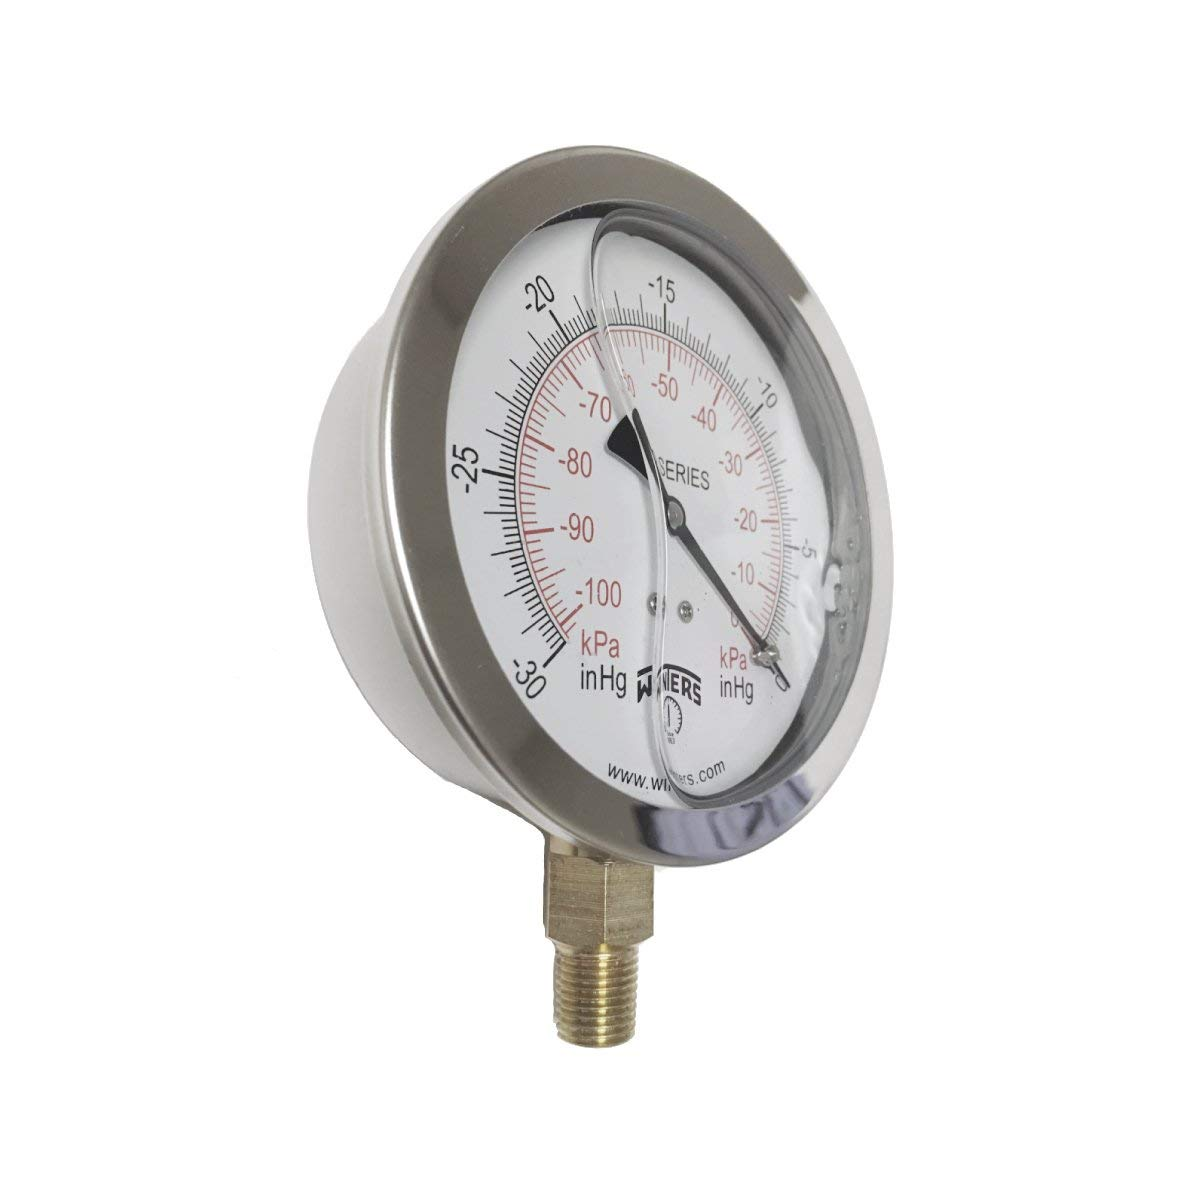 "Winters PFQ Series Stainless Steel 304 Dual Scale Liquid Filled Pressure Gauge with Brass Internals, 30"" Hg Vacuum-0-30 psi/kpa,4"" Dial Display, +/- 1.5% Accuracy, 1/4"" NPT Bottom Mount"